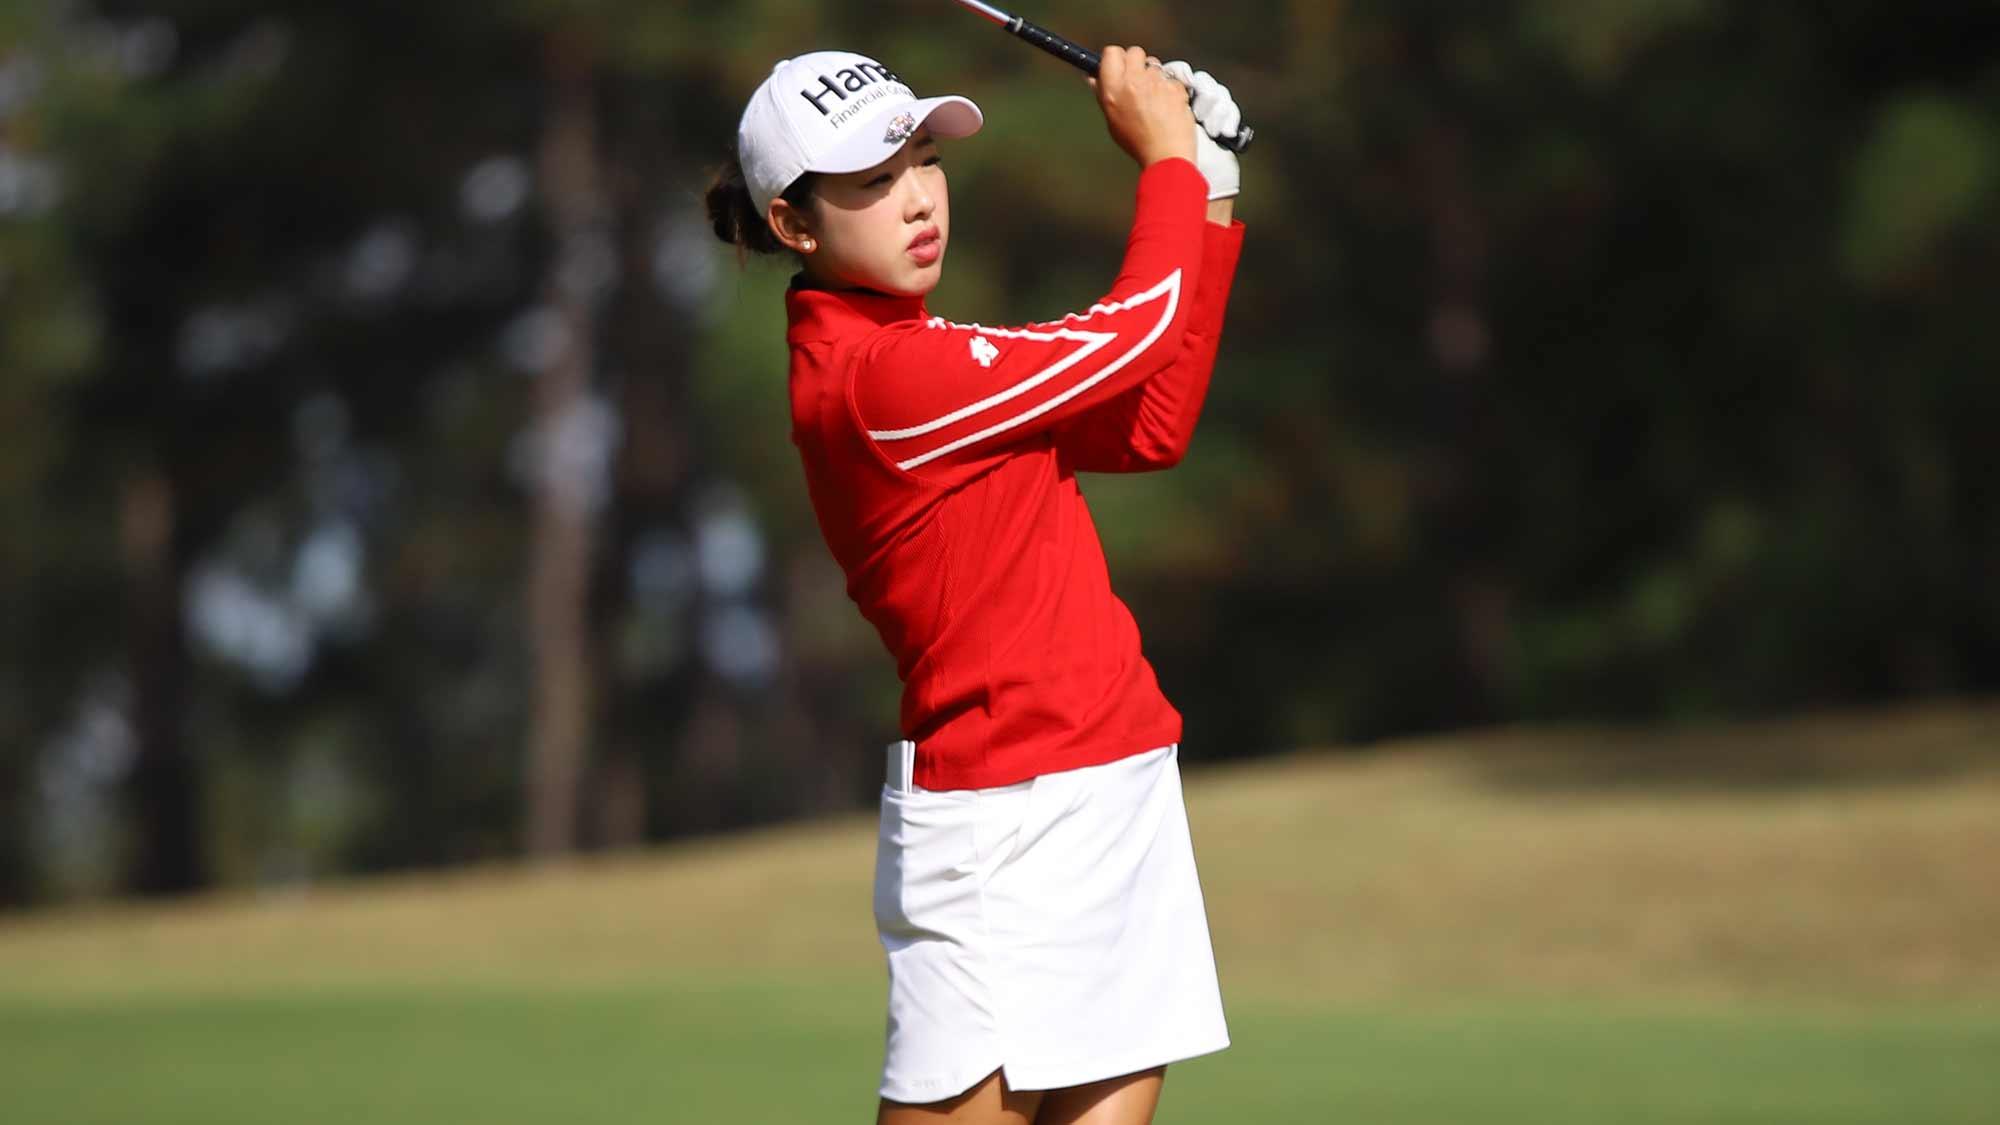 Yealimi Noh hits a shot during the third round of the 2019 LPGA Q-Series at Pinehurst Resort